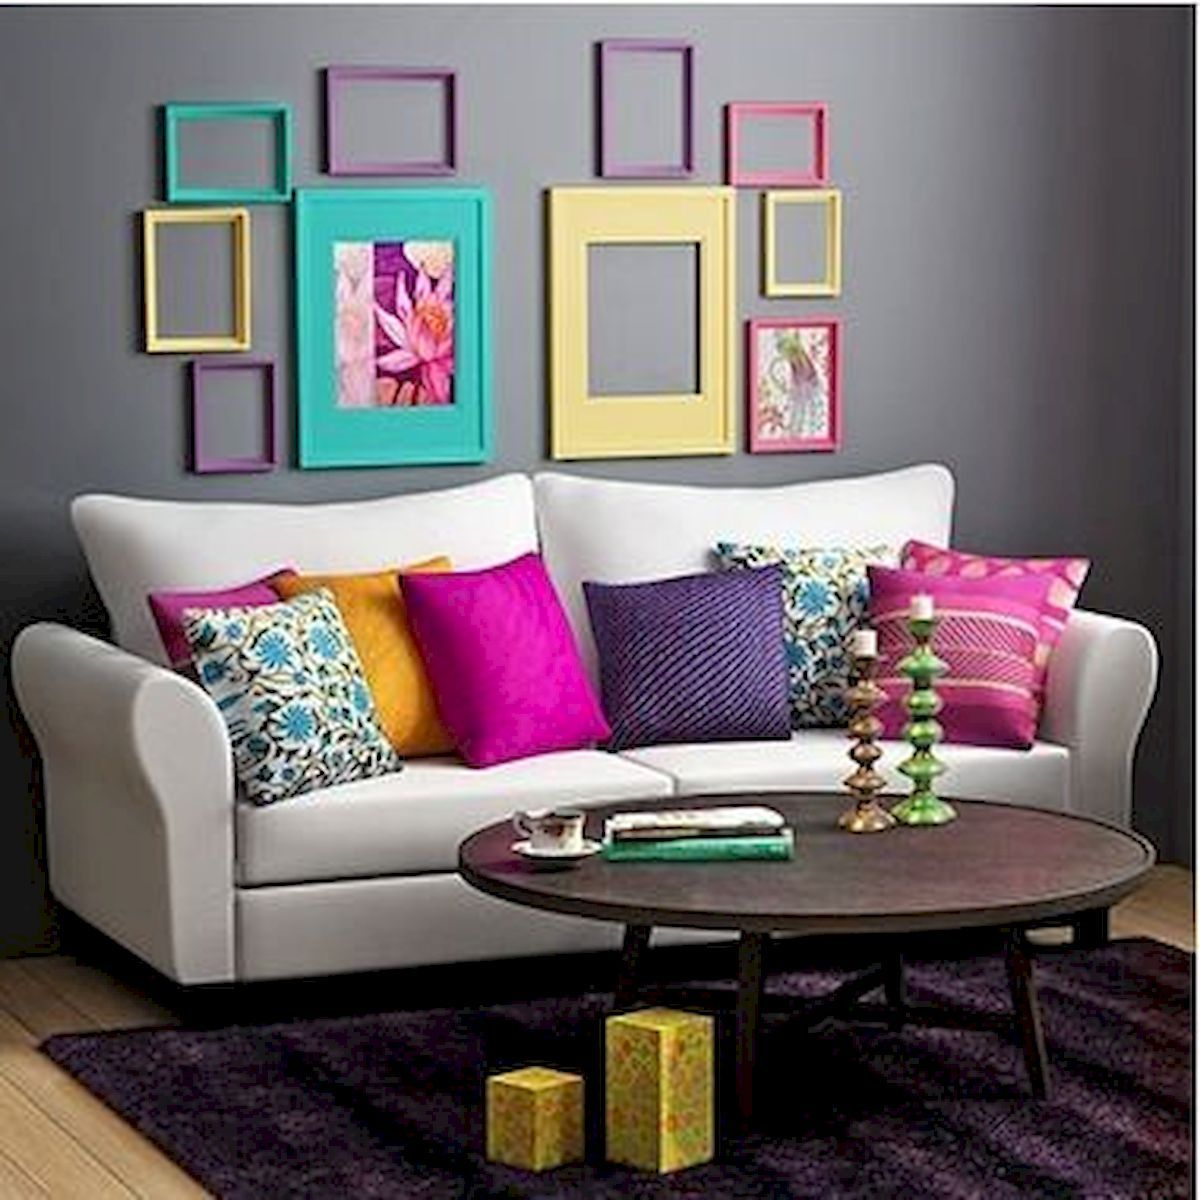 80+ Stunning Colorful Living Room Decor Ideas And Remodel for Summer Project images